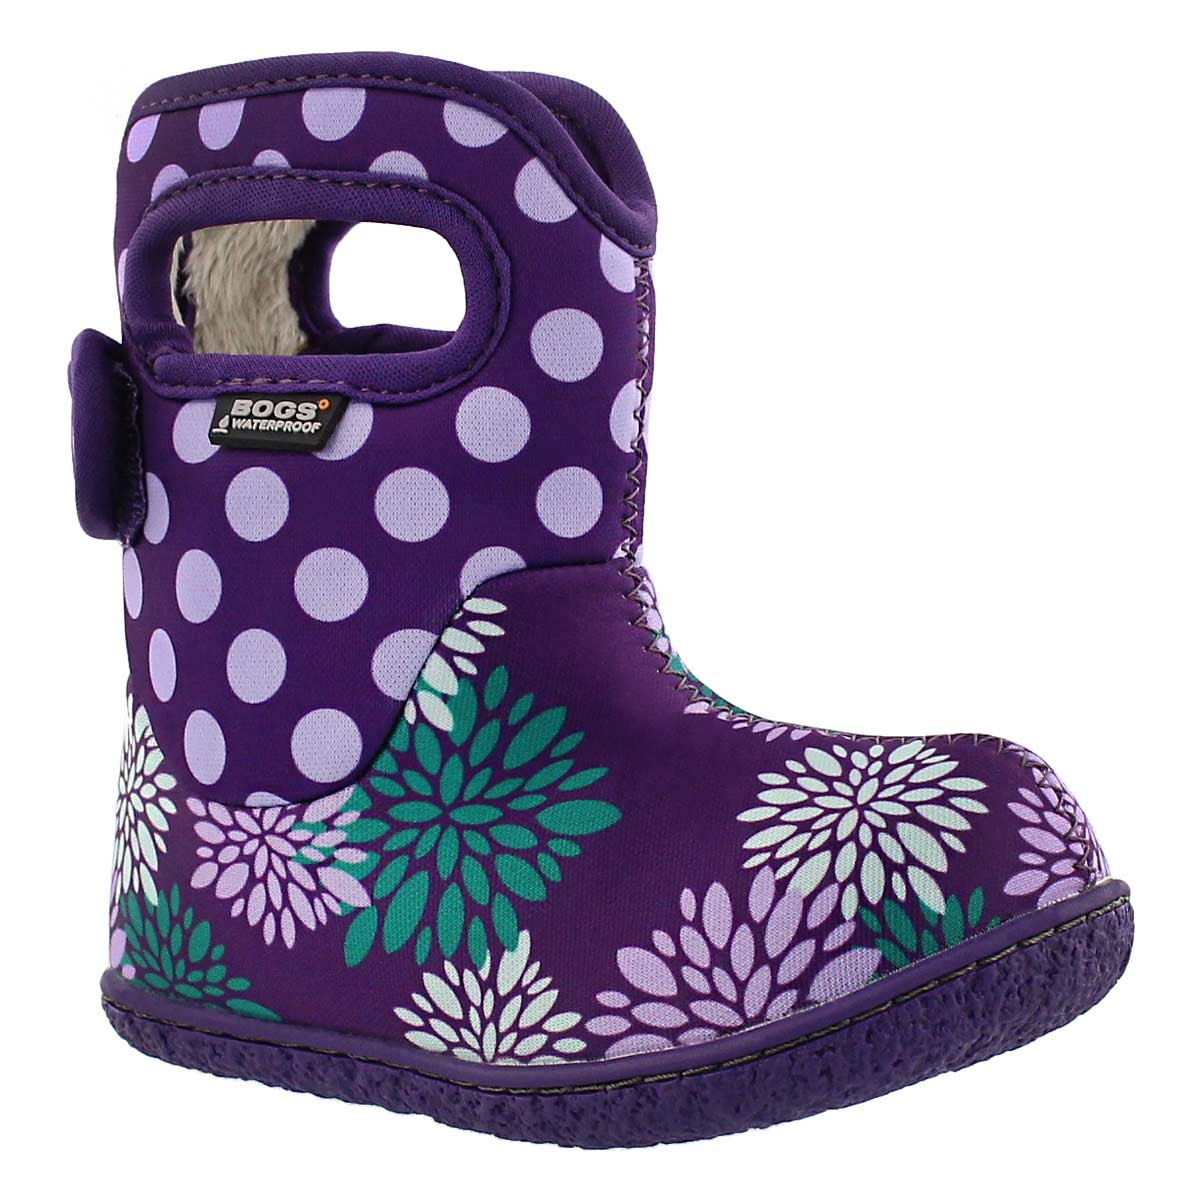 Infants' CLASSIC POMPON DOTS ppl waterproof boots